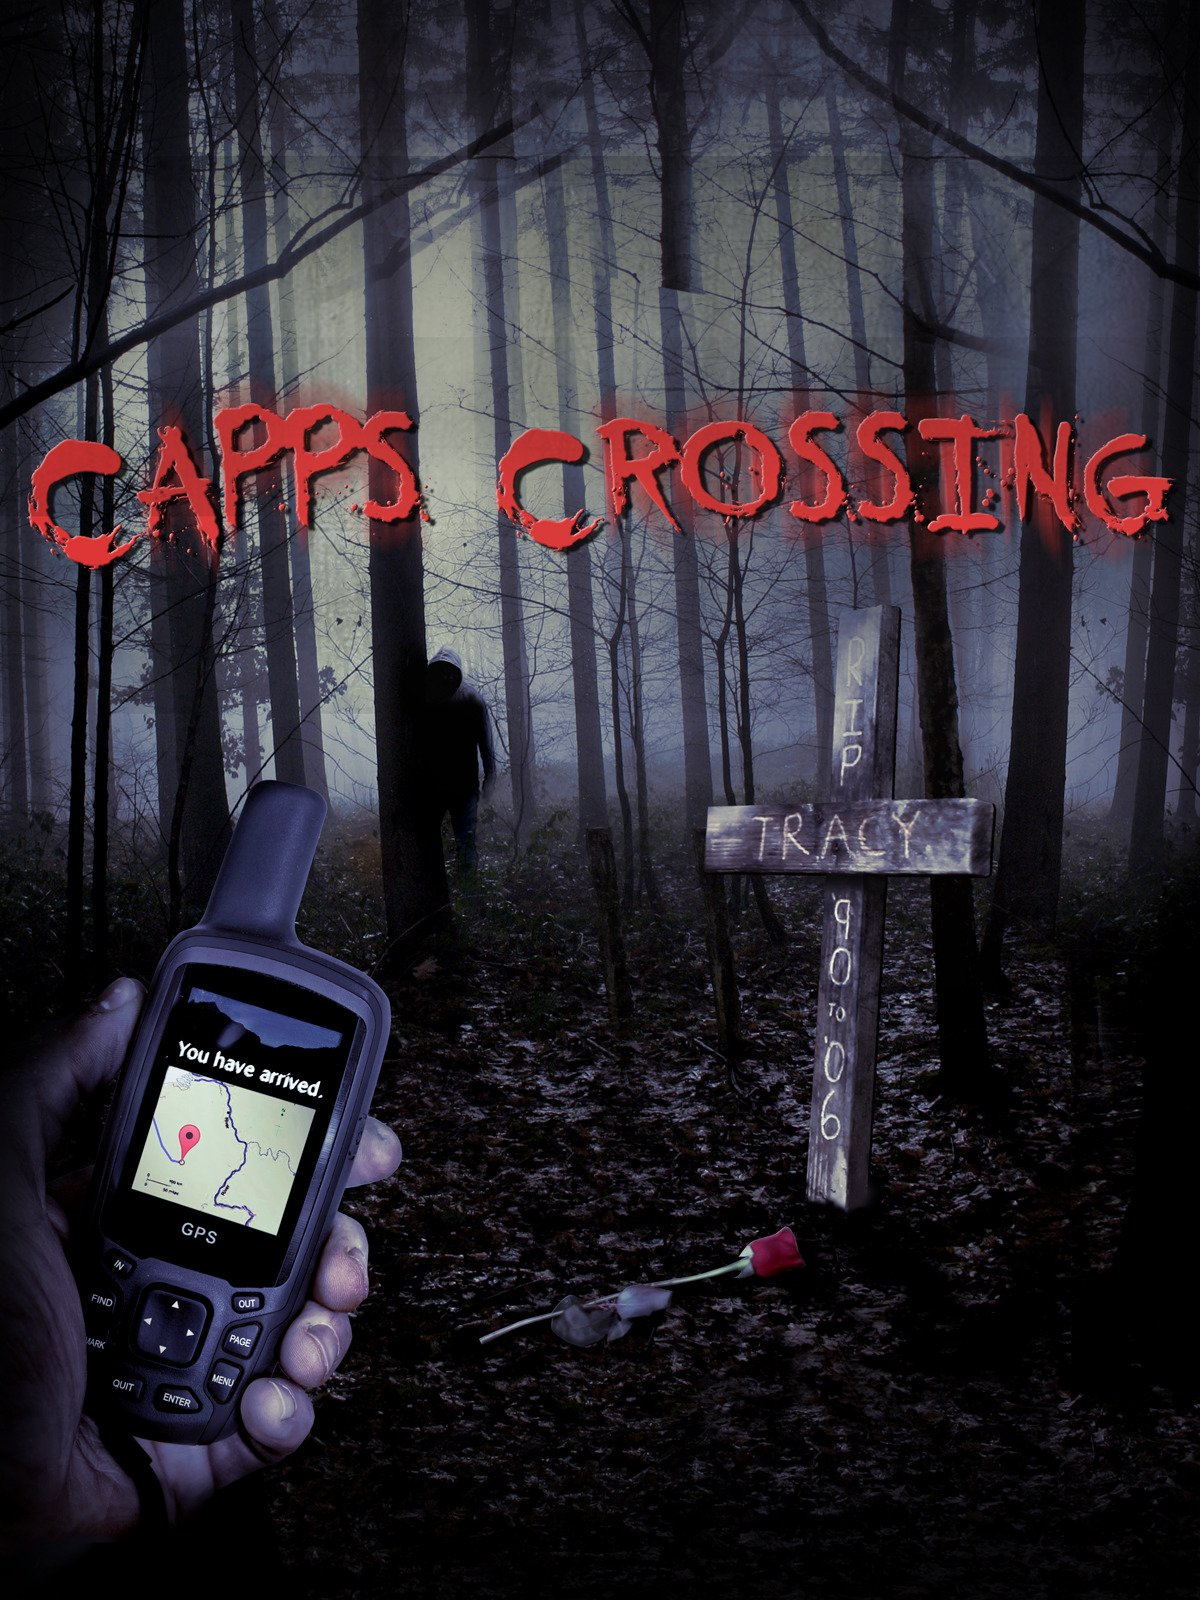 Capps Crossing